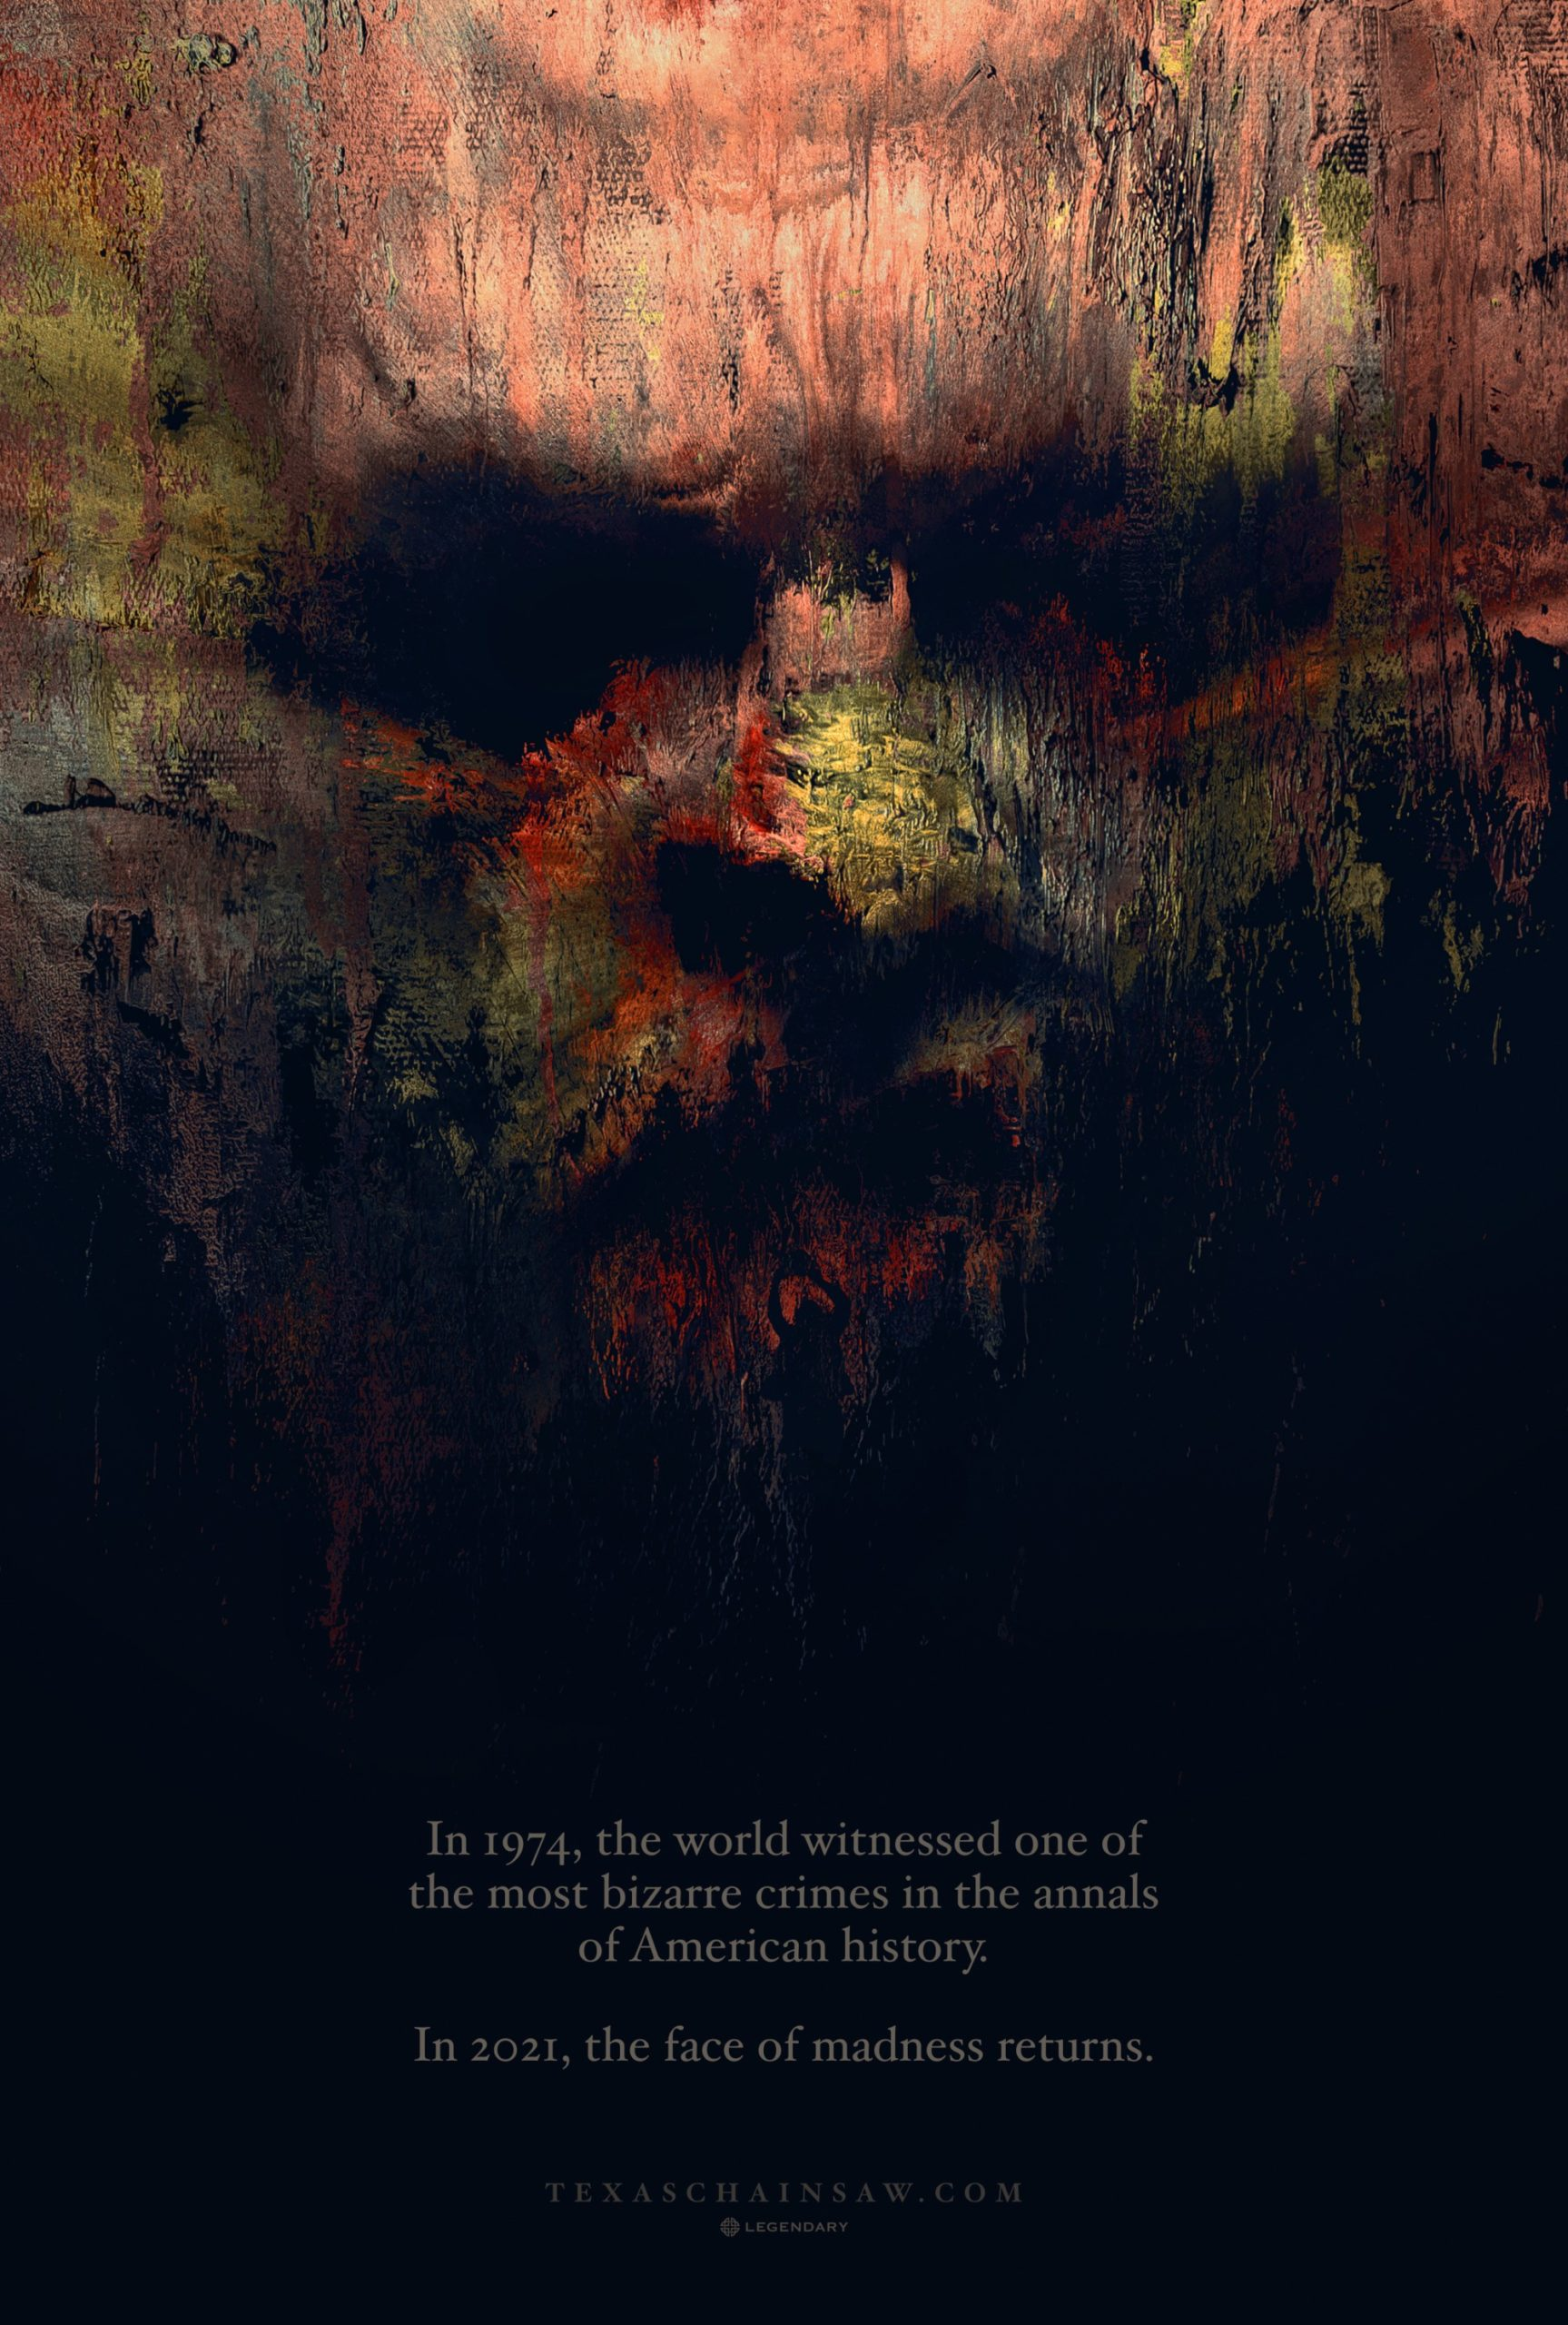 The first poster for The Texas Chainsaw Massacre sequel features a scary Leatherface 13